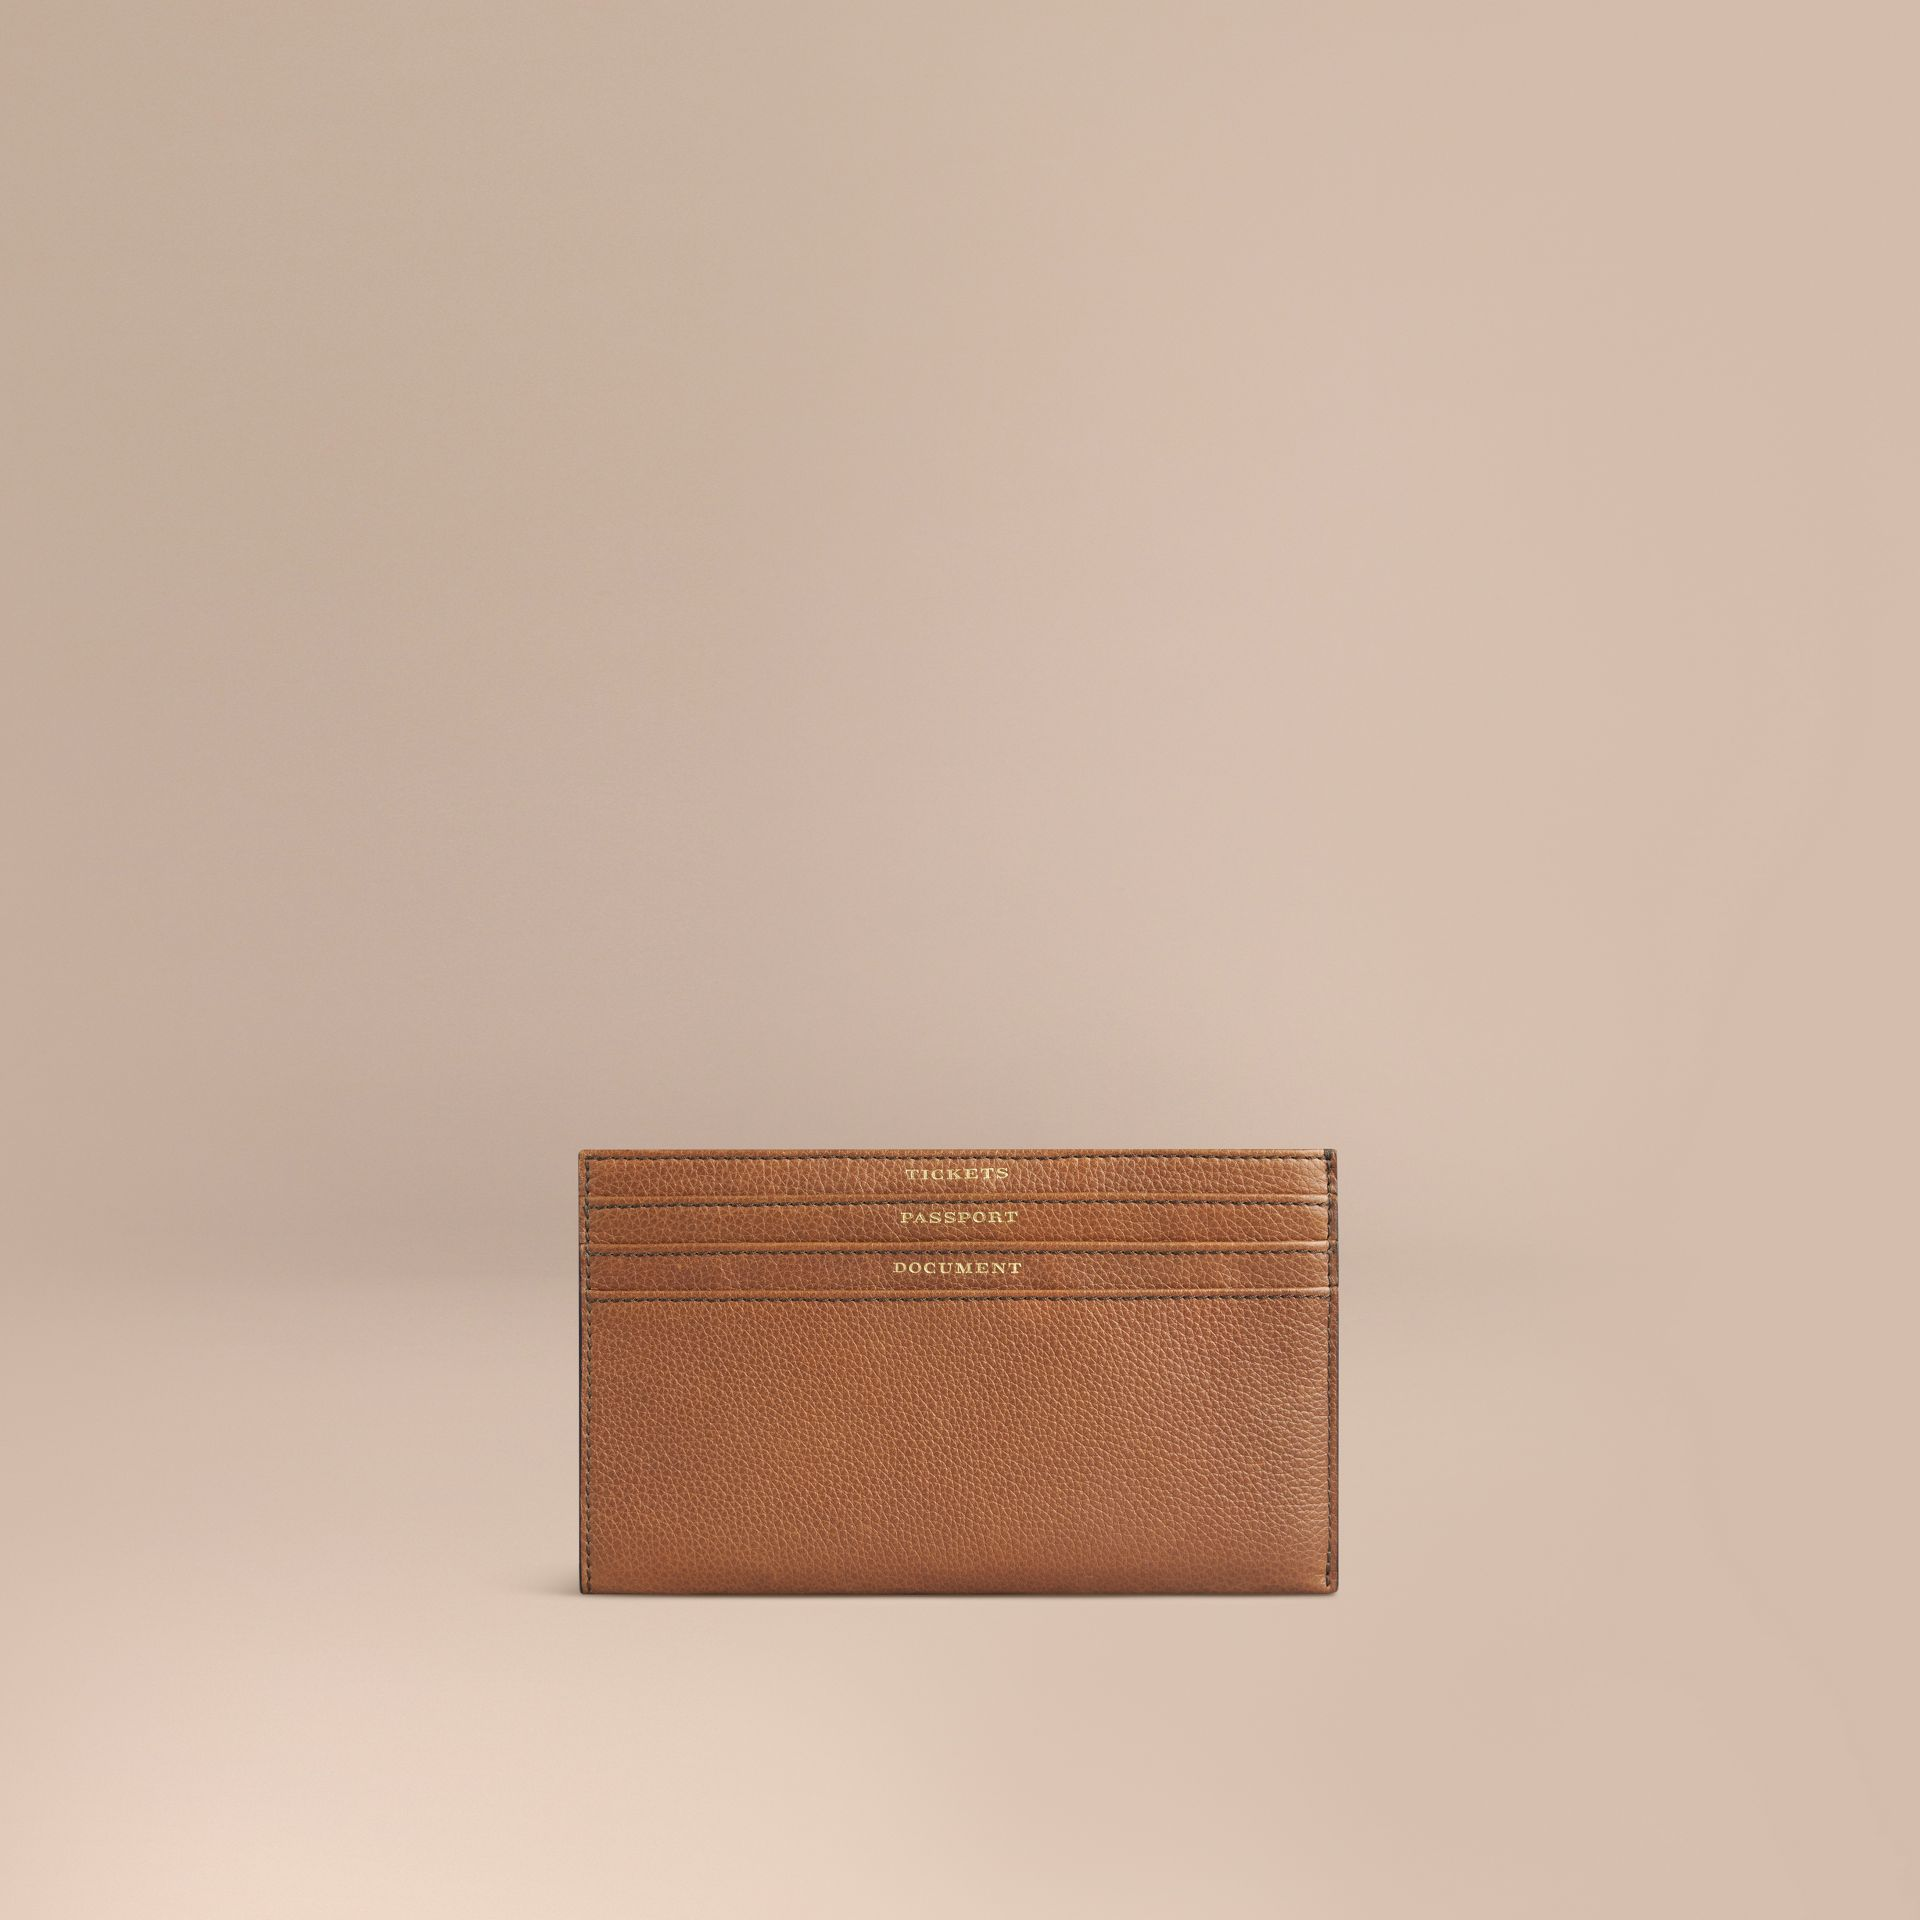 Grainy Leather Travel Case in Tan - gallery image 1